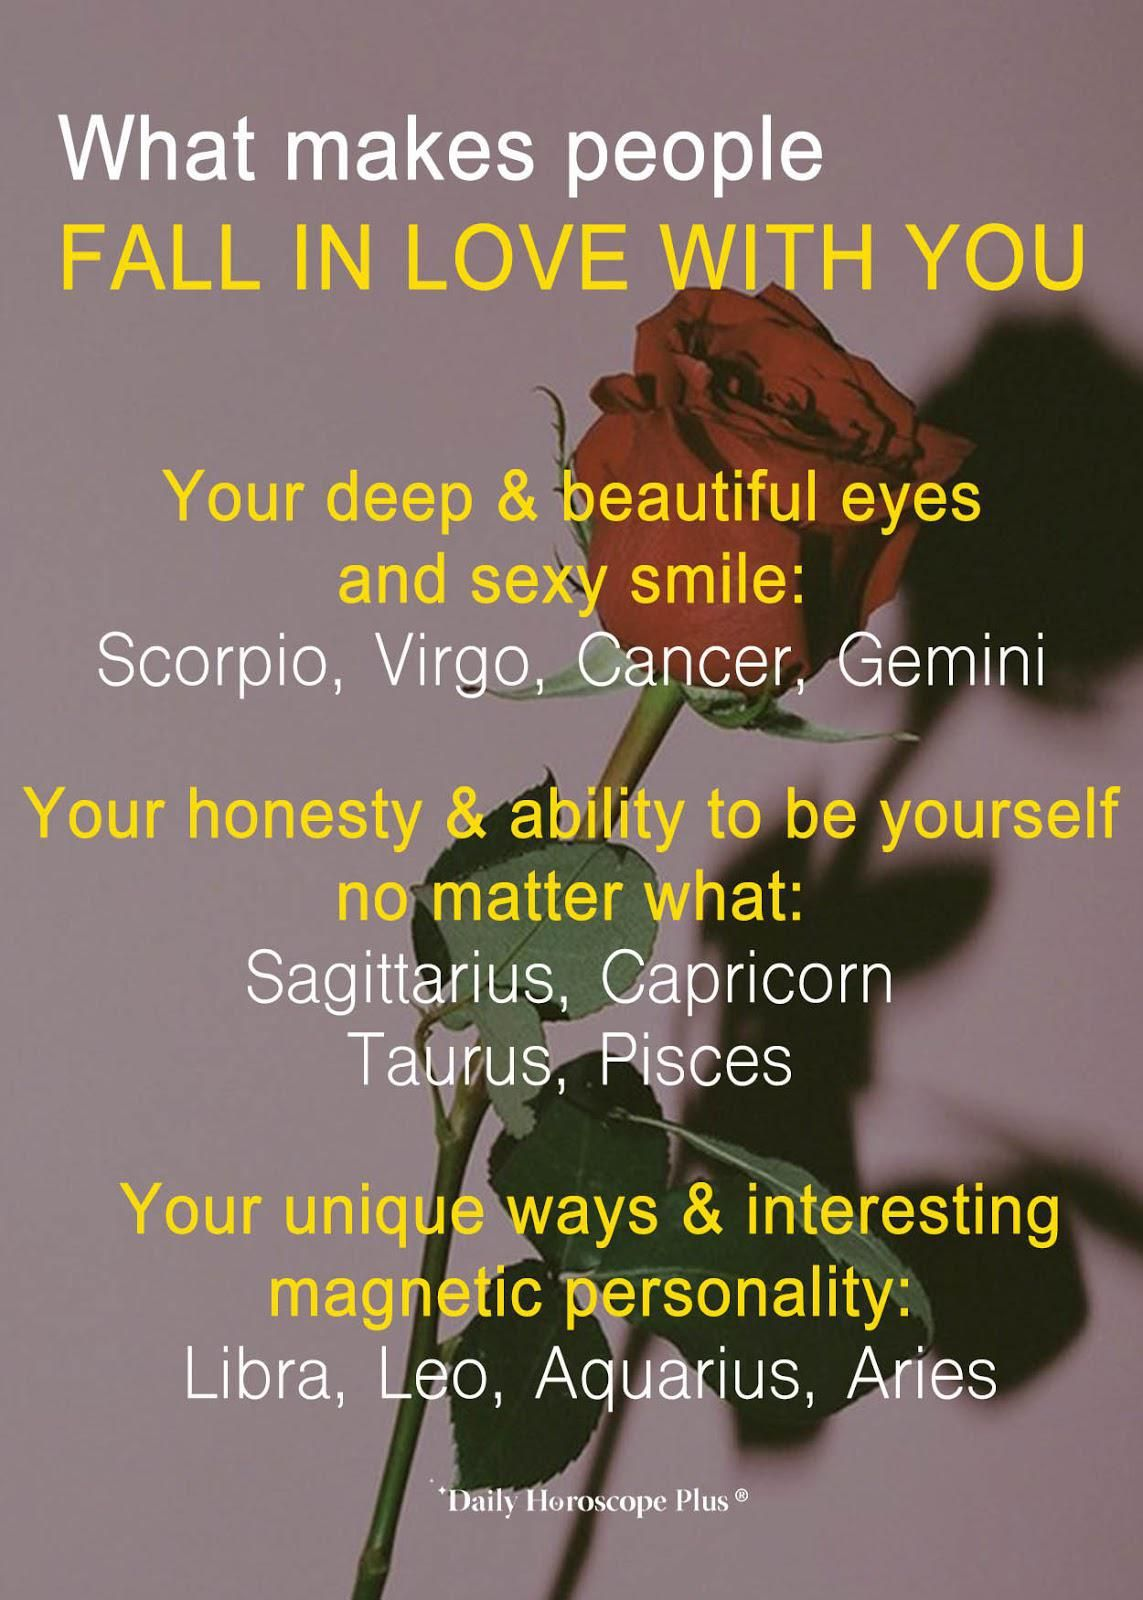 Horoscope Memes Quotes Zodiac Star Signs Zodiac Signs Horoscope Zodiac Signs